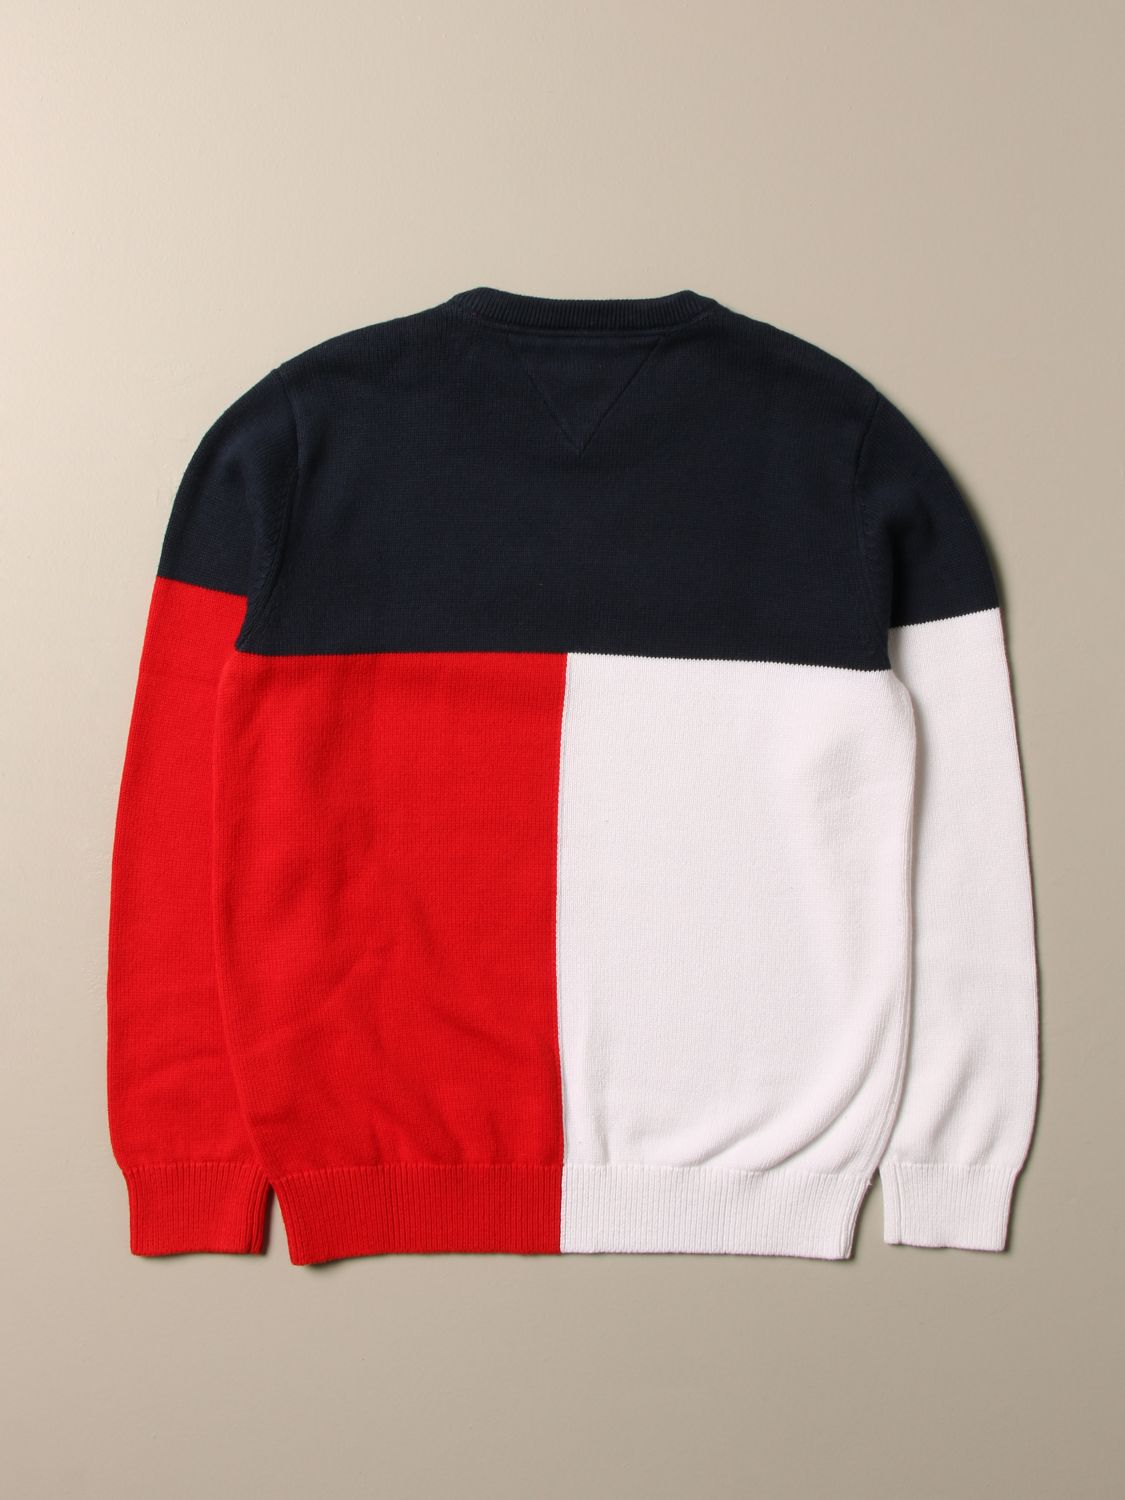 Sweater Tommy Hilfiger: Tommy Hilfiger tricolor sweater with logo white 2